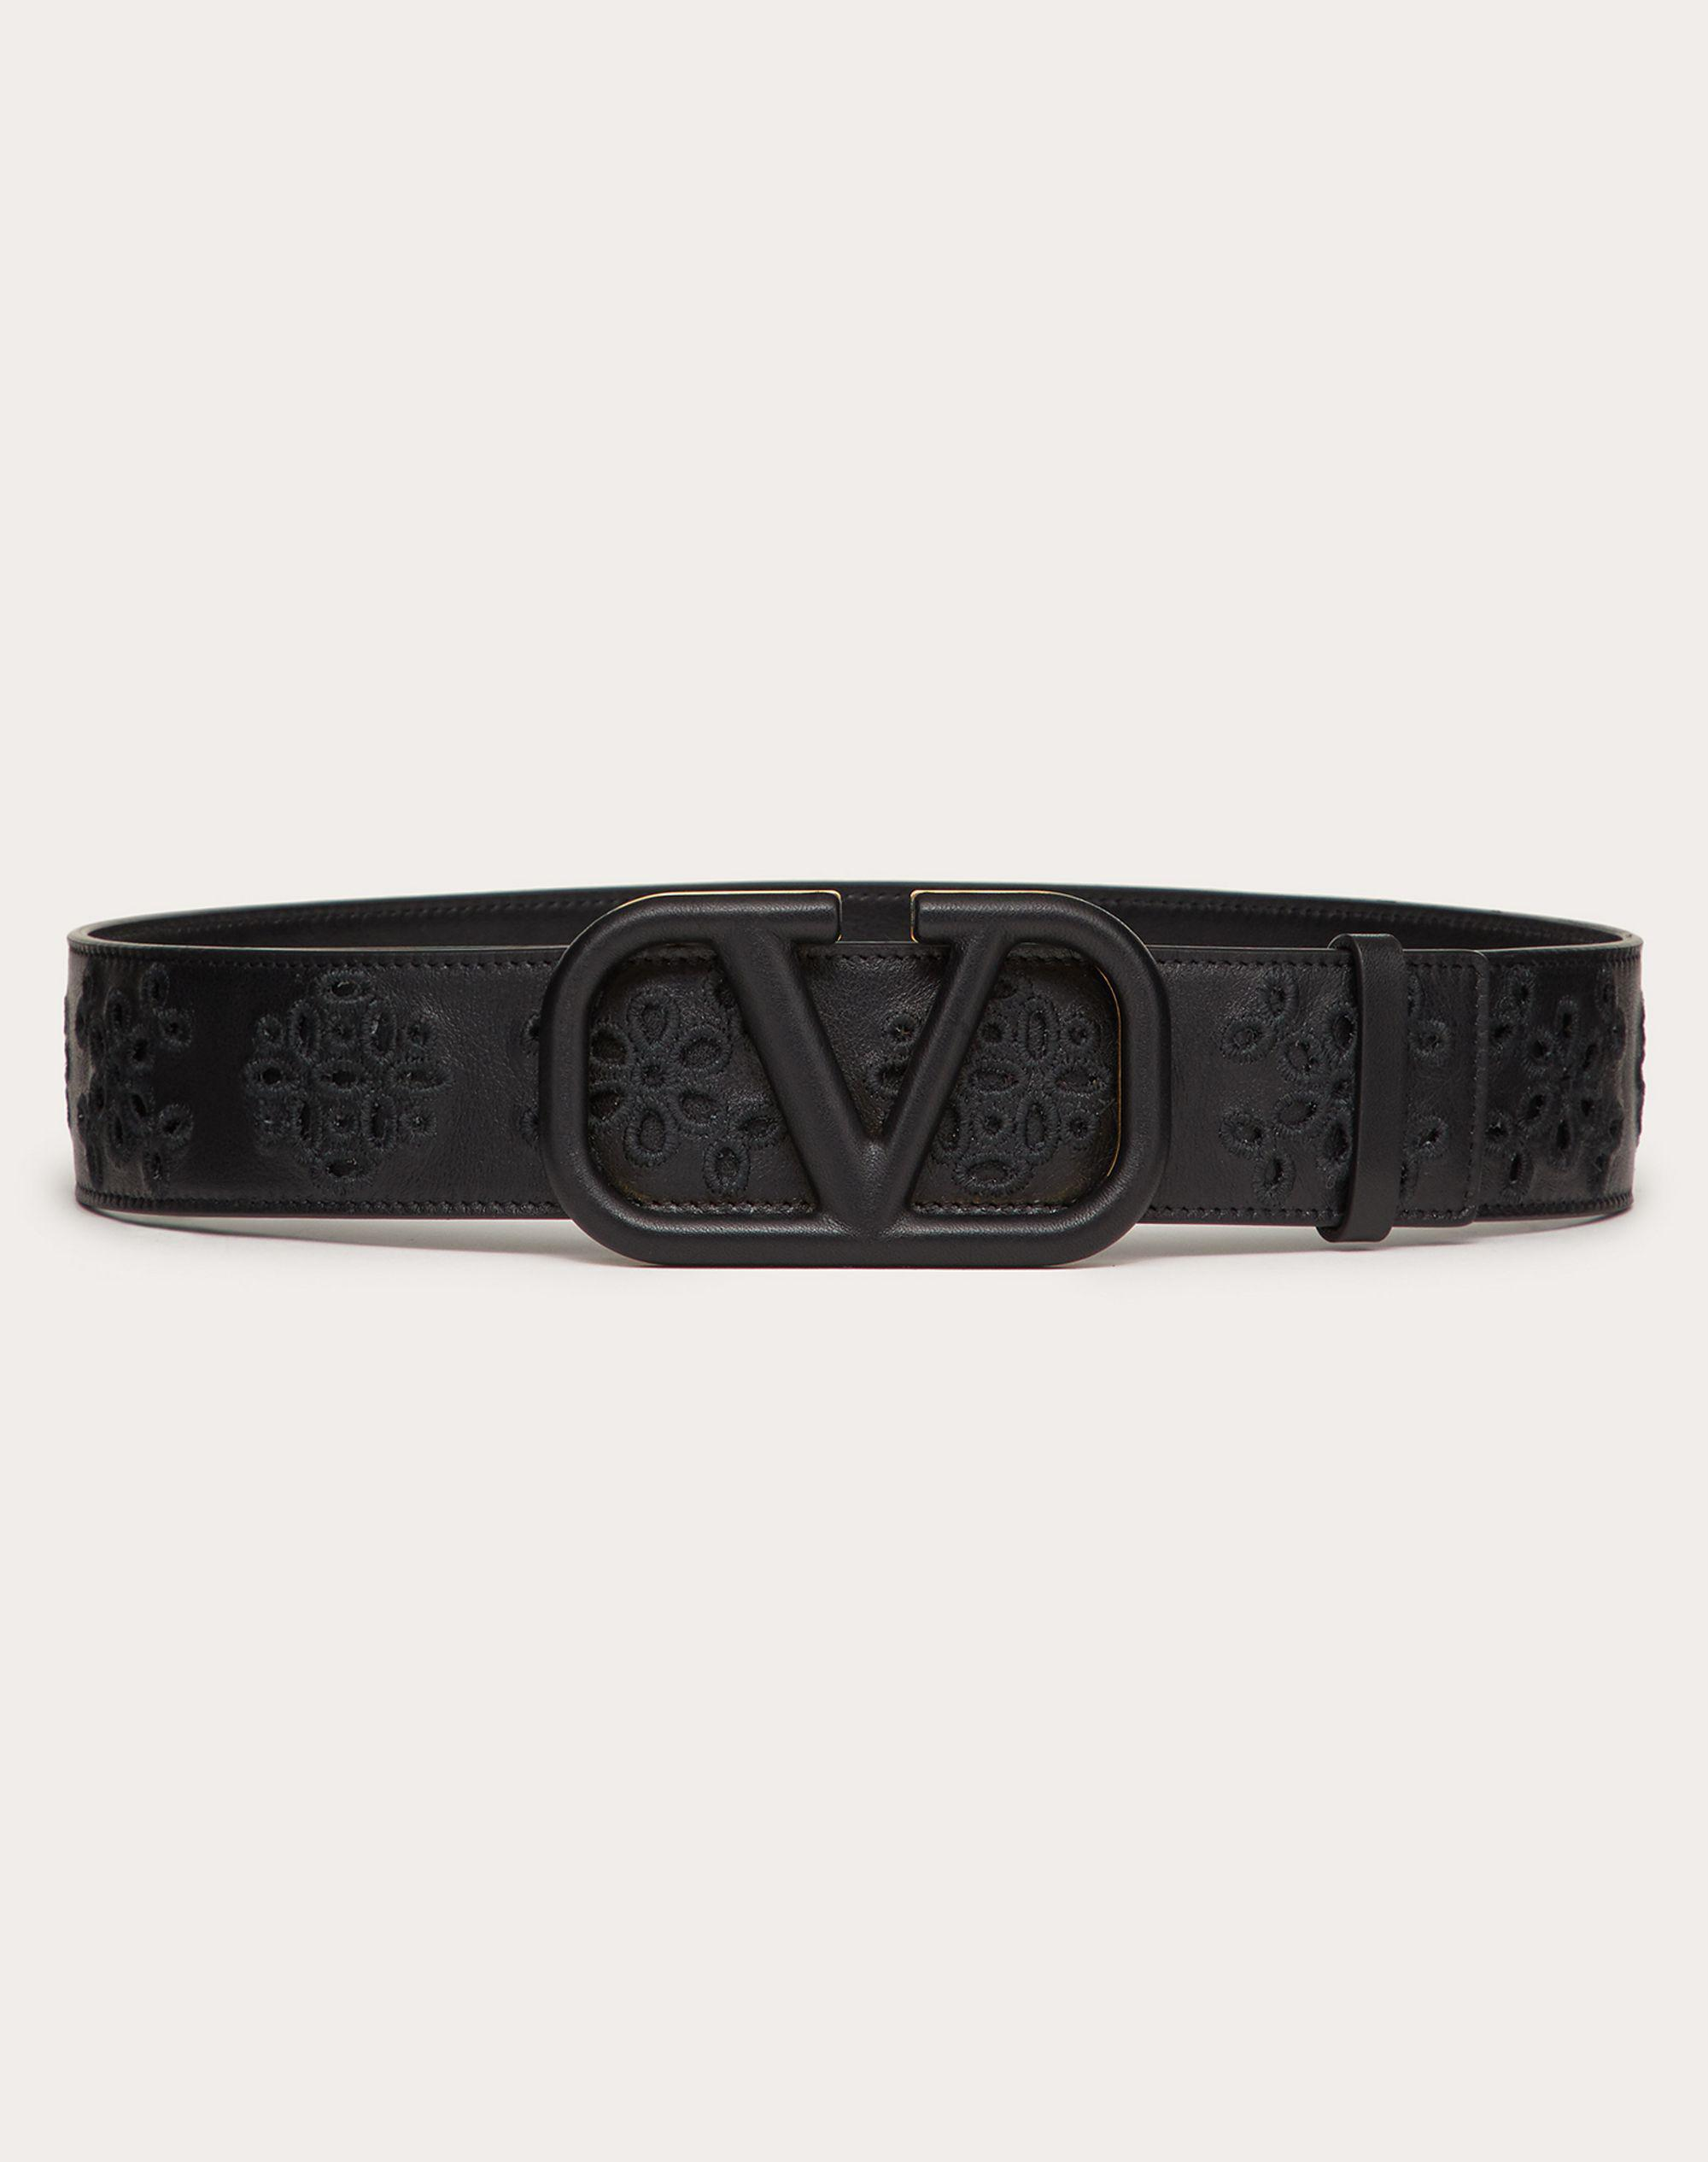 VLOGO SIGNATURE BELT IN CALFSKIN WITH SAN GALLO EMBROIDERY 40 MM